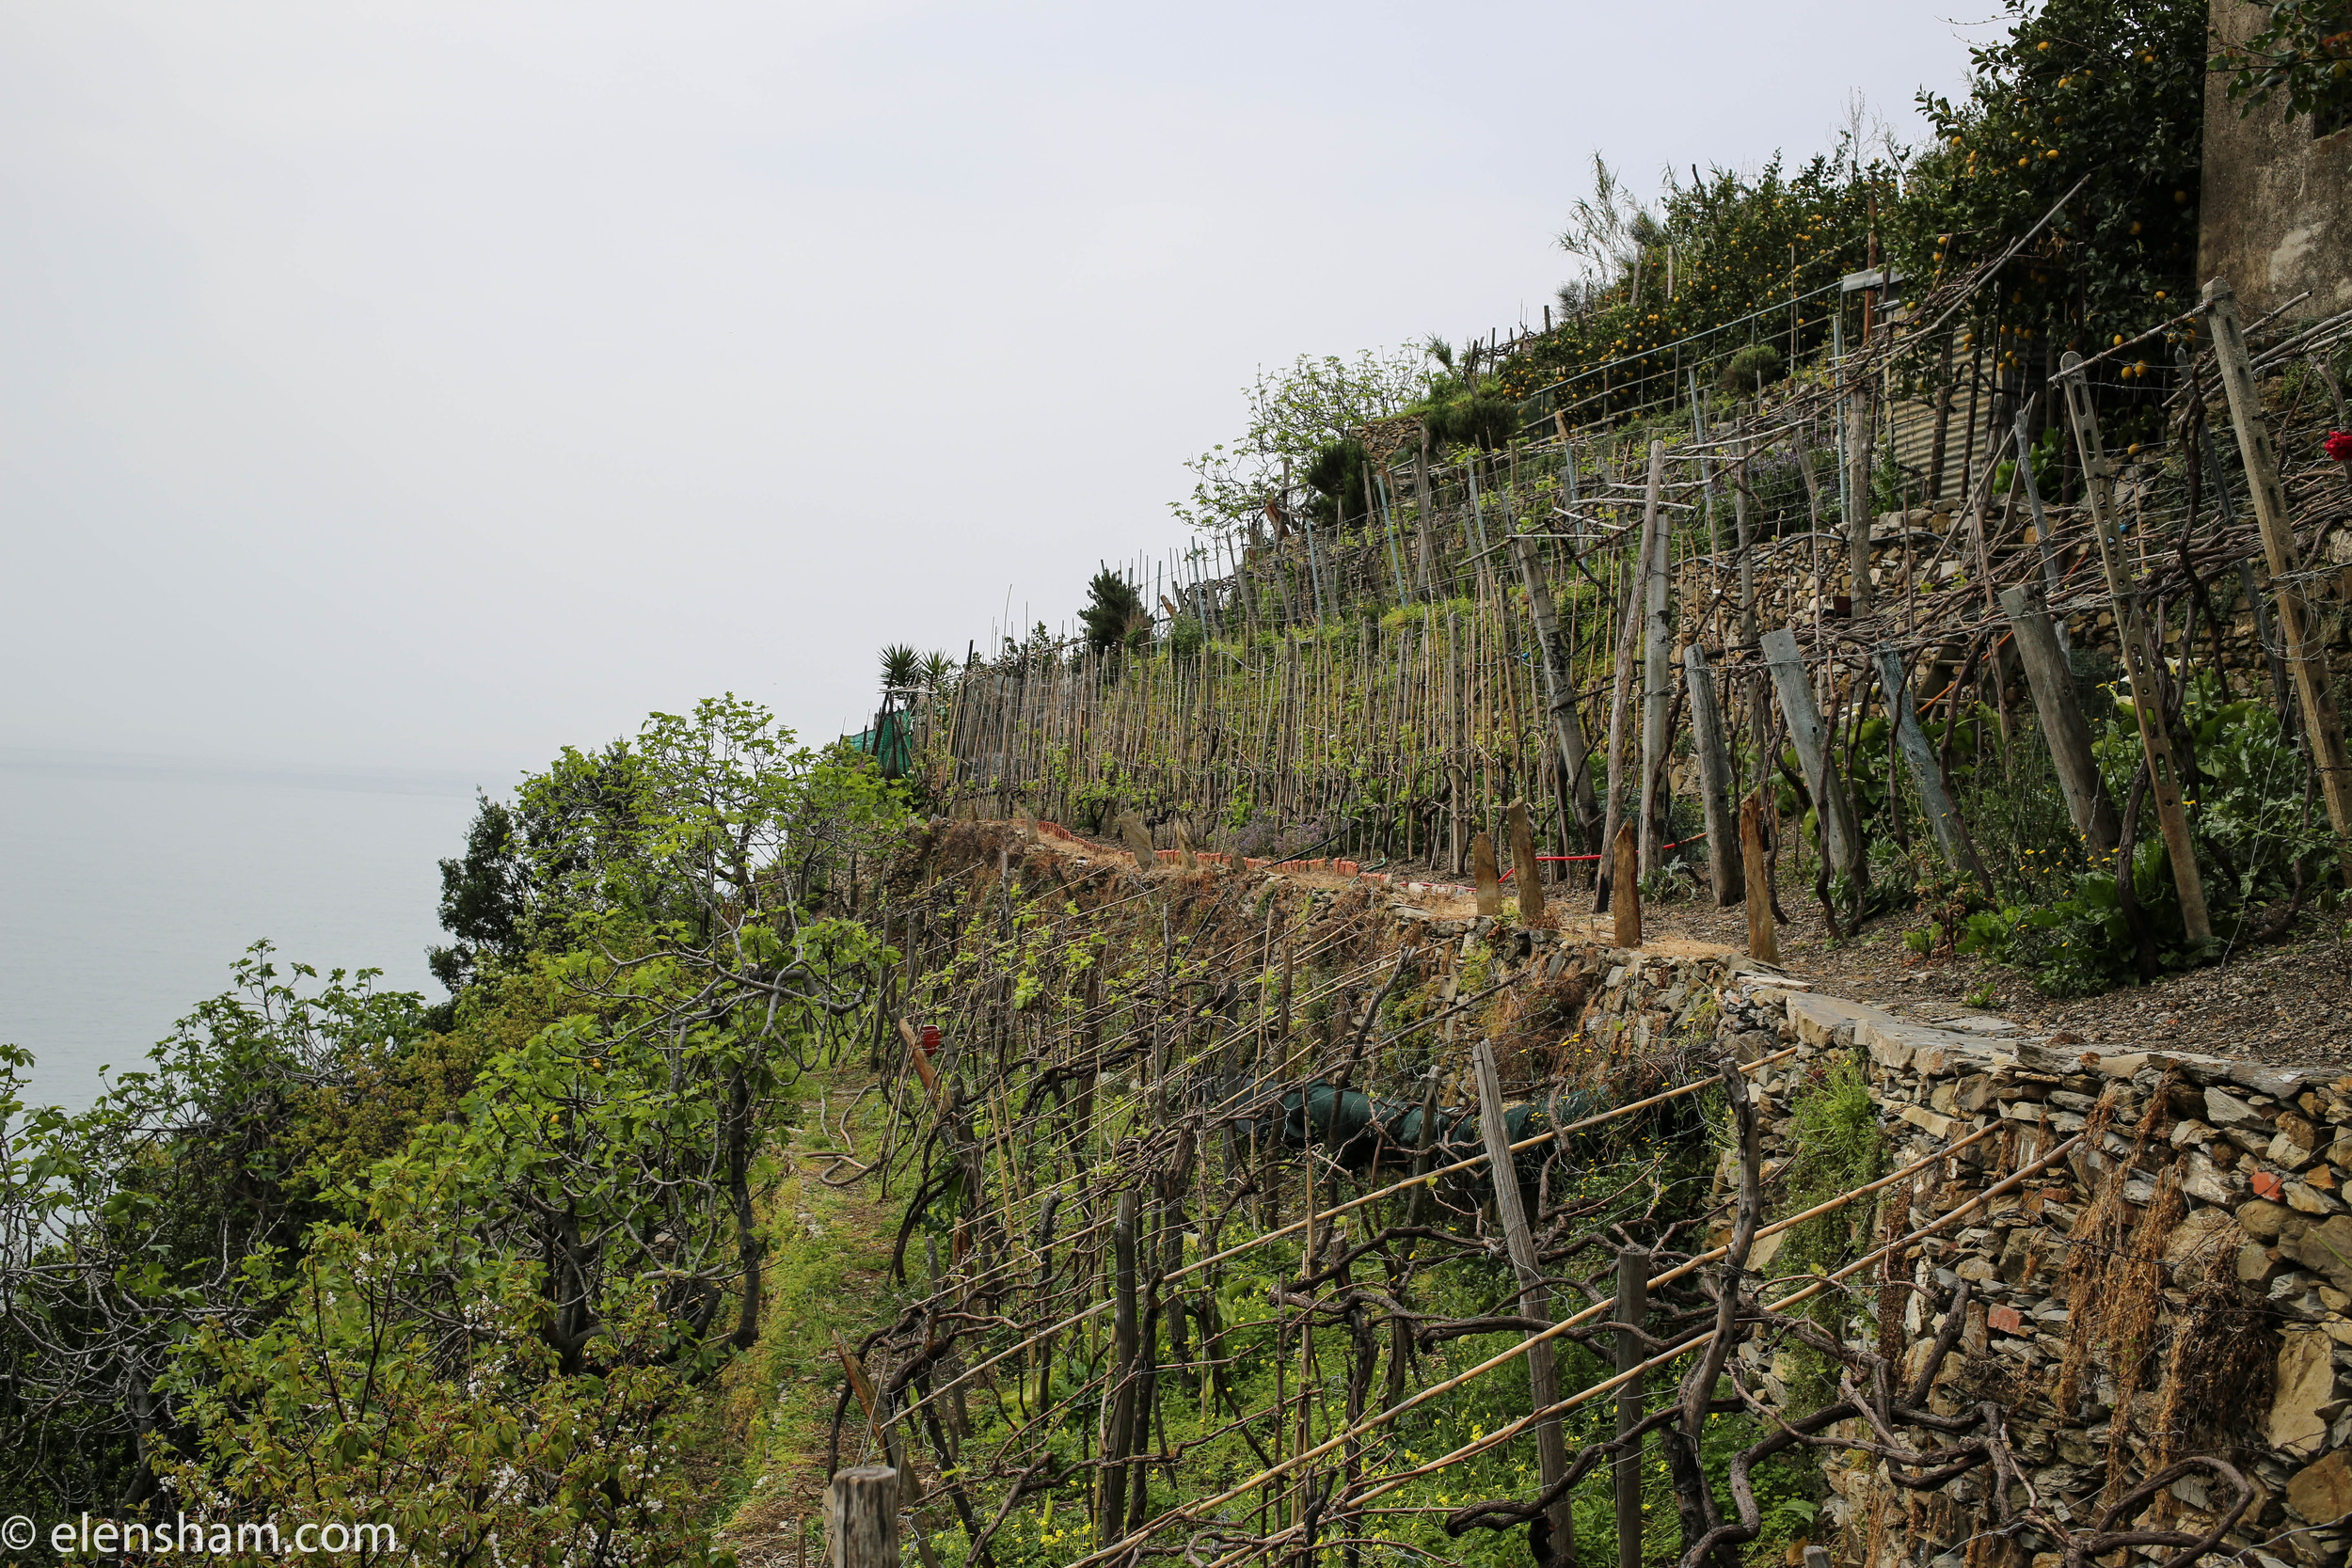 Vineyards on the way